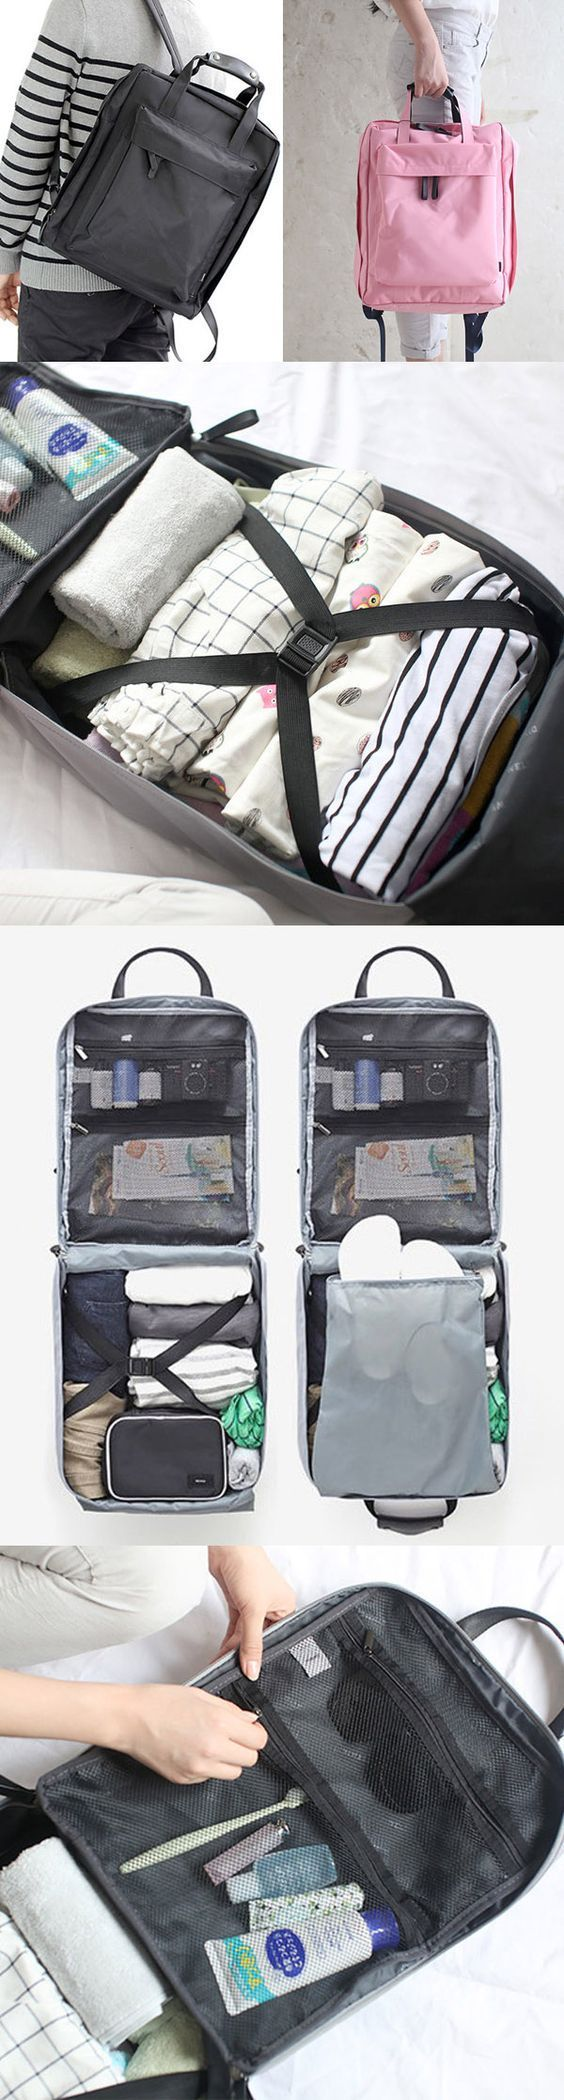 US$22.35 Travel Waterproof Nylon Storage Backpack, Outdoor Women Men Unisex Handbag,Outdoor Backpack,Travel Bag,Travel Tips Packing